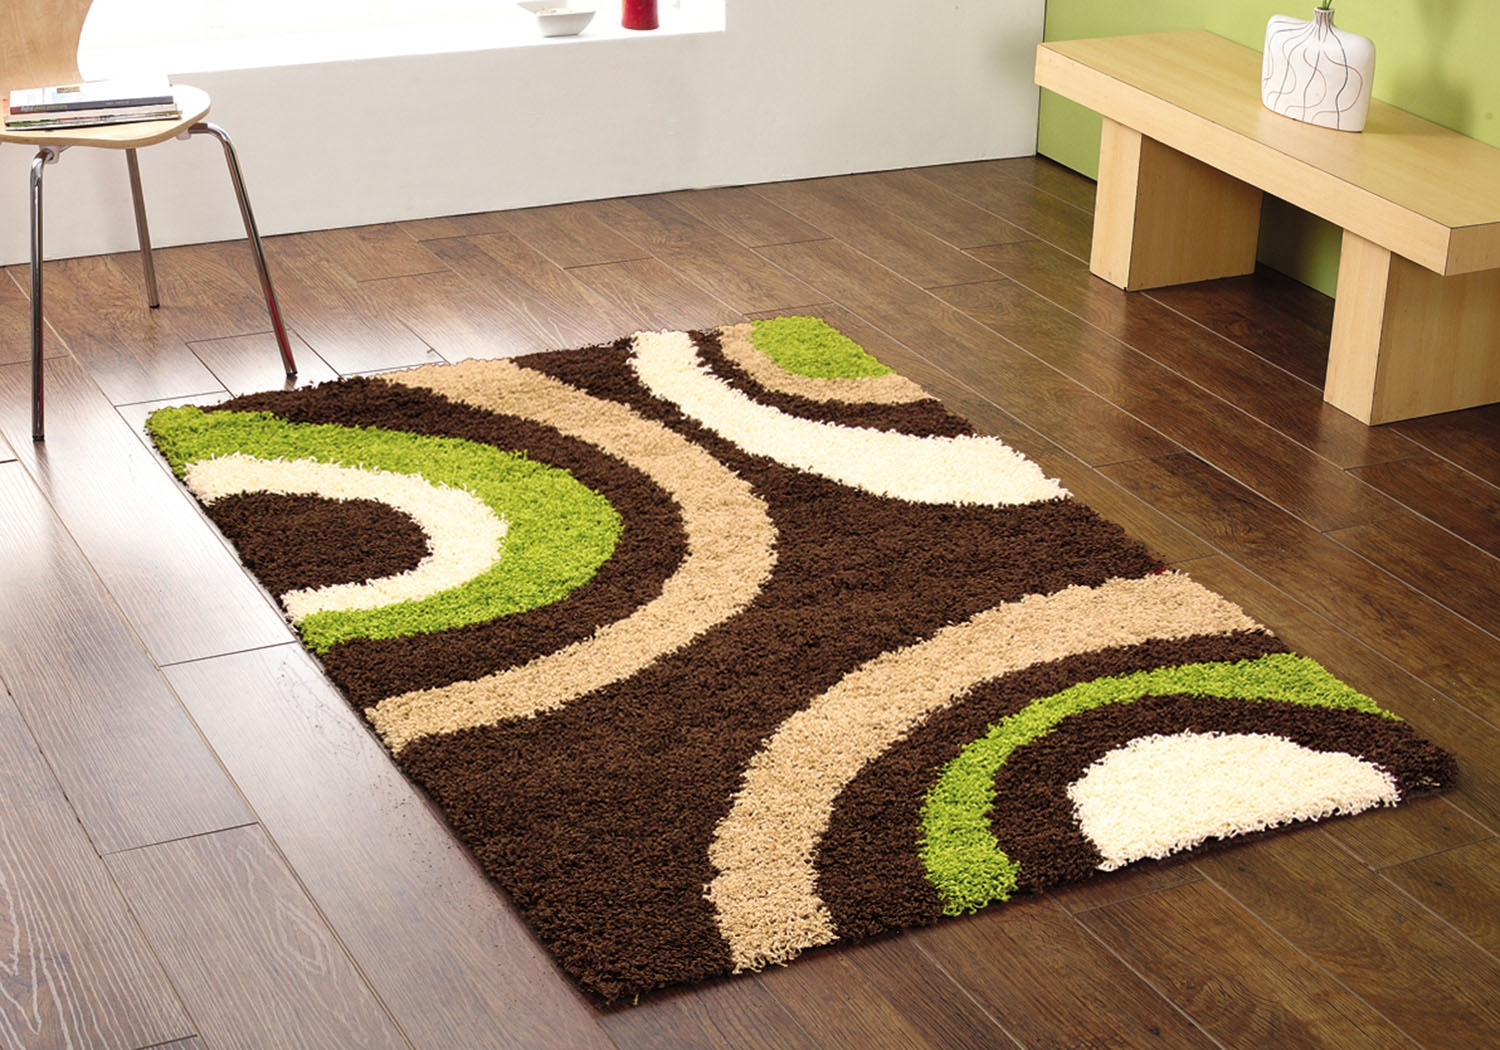 15 Best Green And Brown Rugs  Area Rugs Ideas. Interior Sliding French Doors. Task Lighting. Pergola Lights. Pictures Of Kitchen Cabinets. Hobby Room. Contemporary Couch. Bathroom Accessories Ideas. Big Wall Art